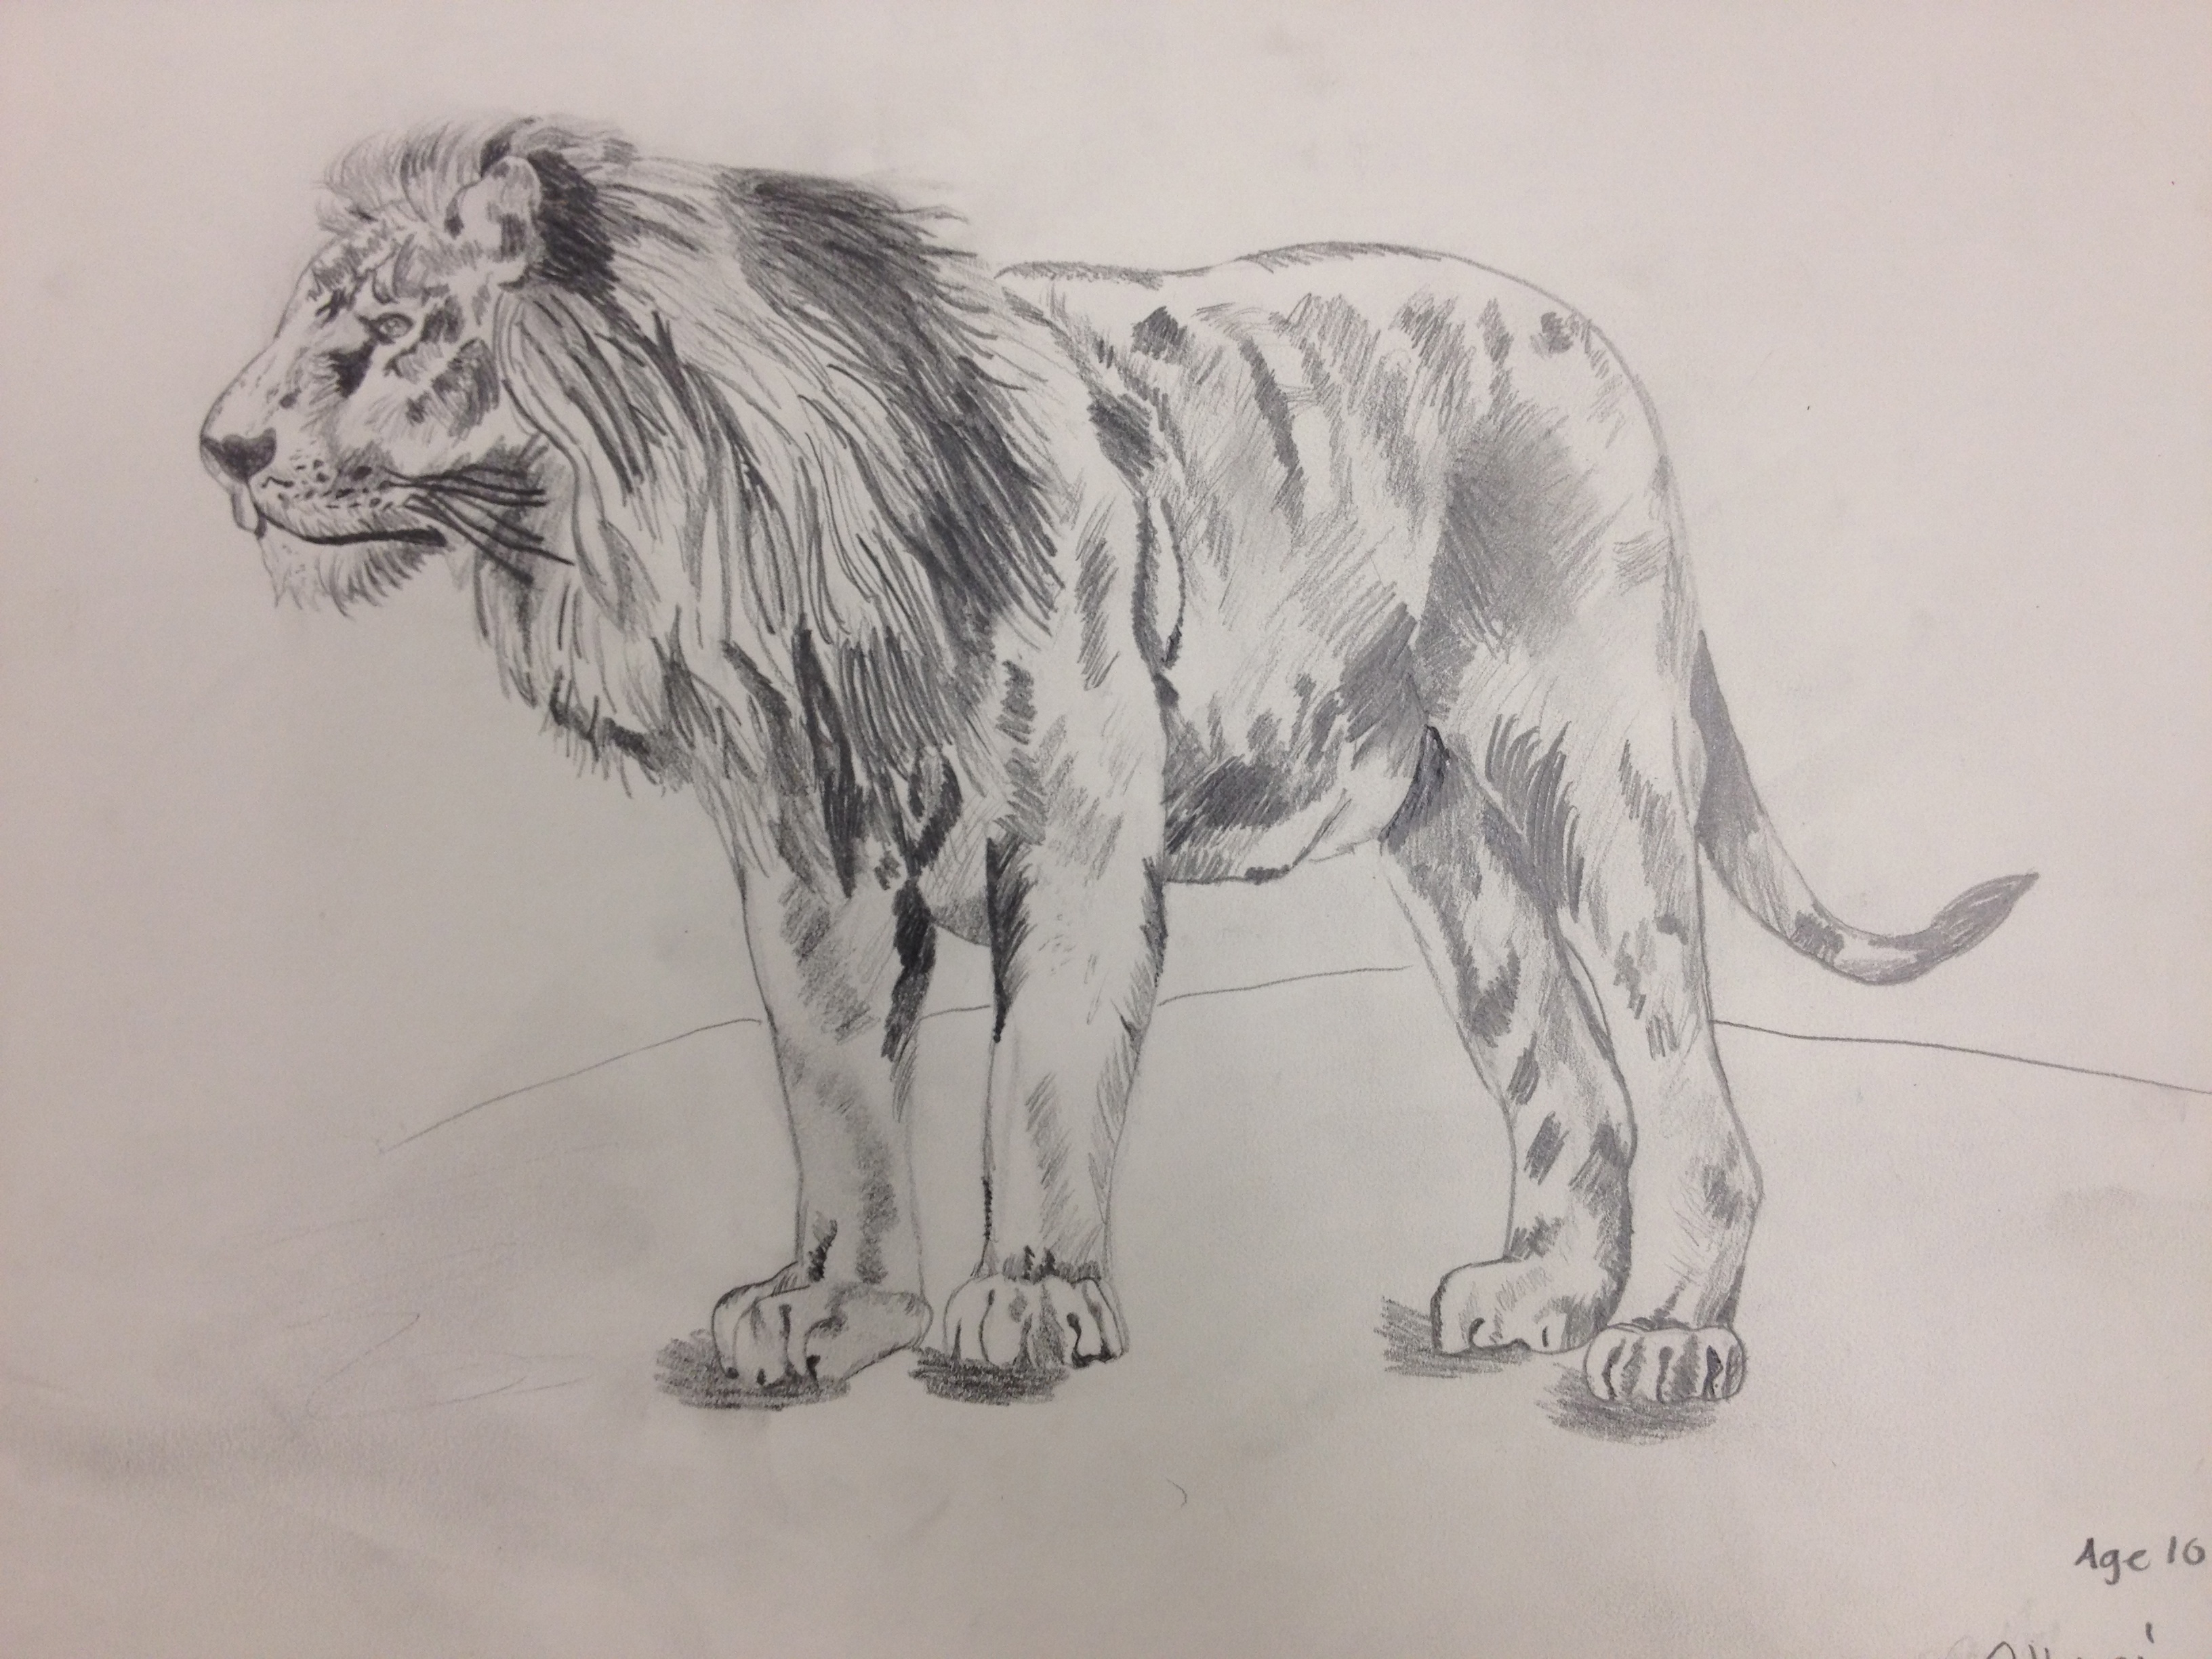 Lion pencil drawing by an 11 year old